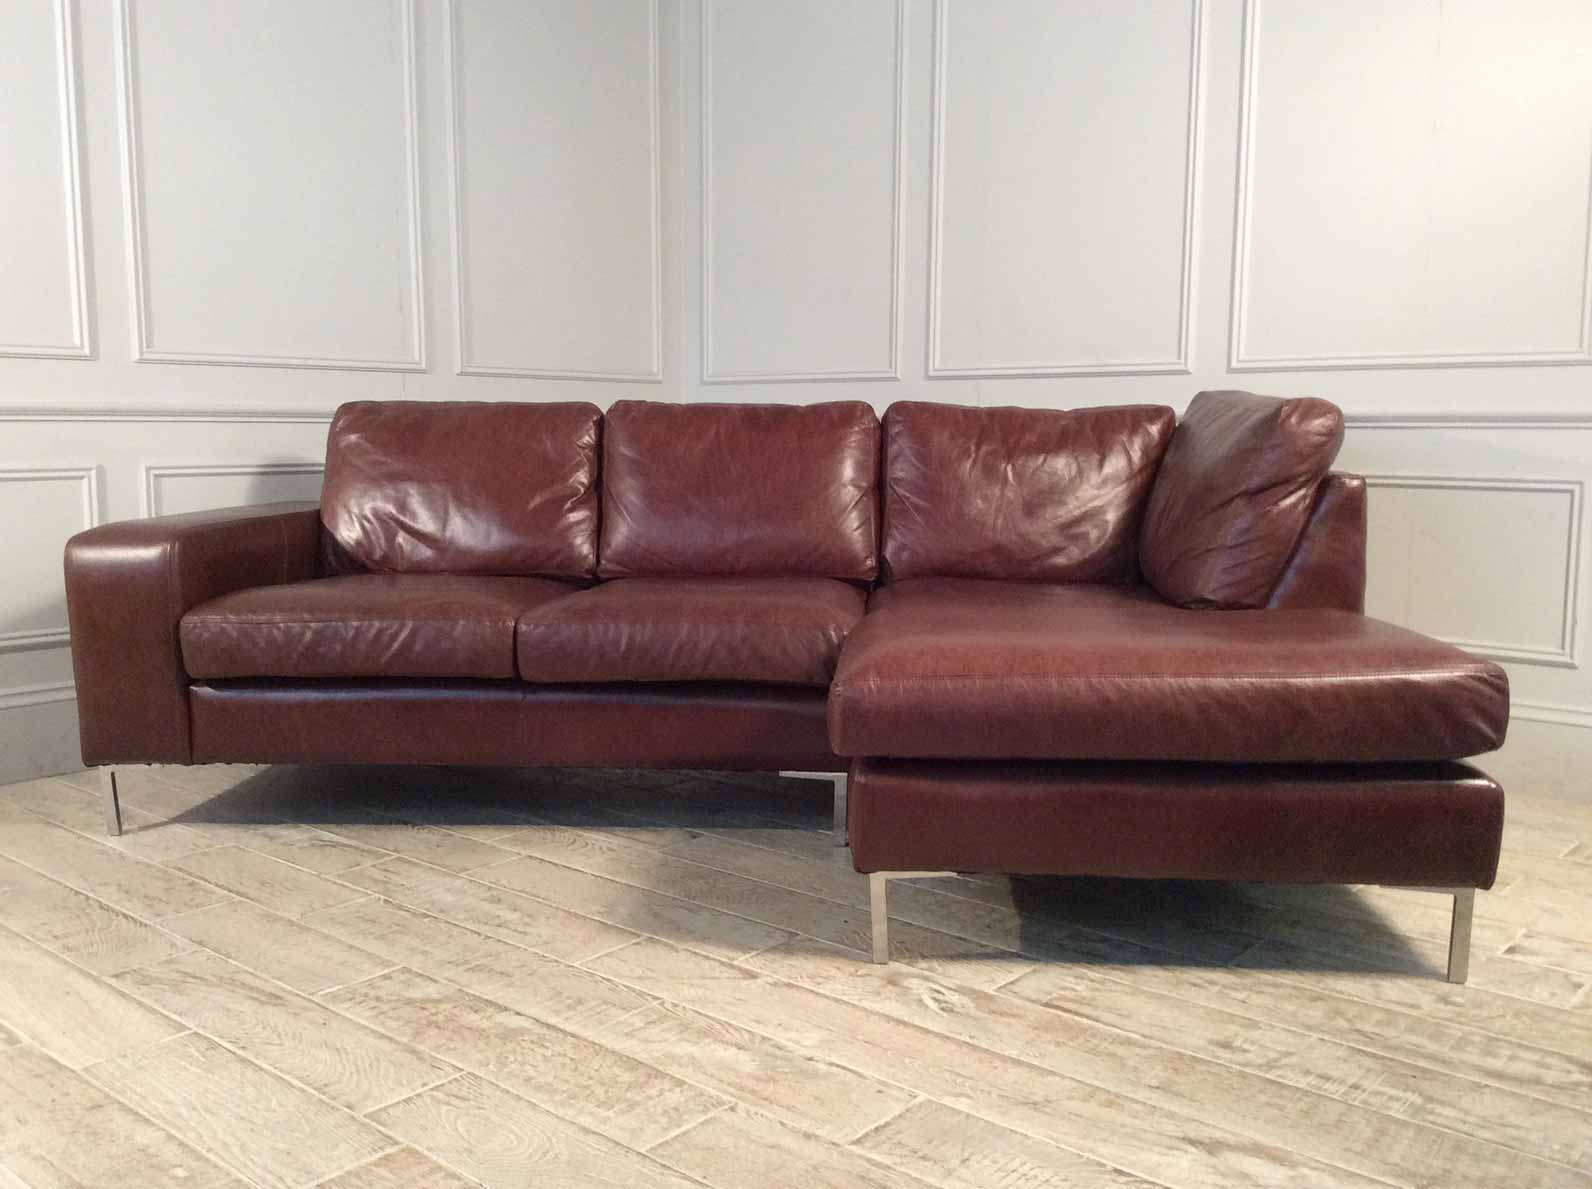 Kingly 2.5 Seater Sofa with Chaise in Conker